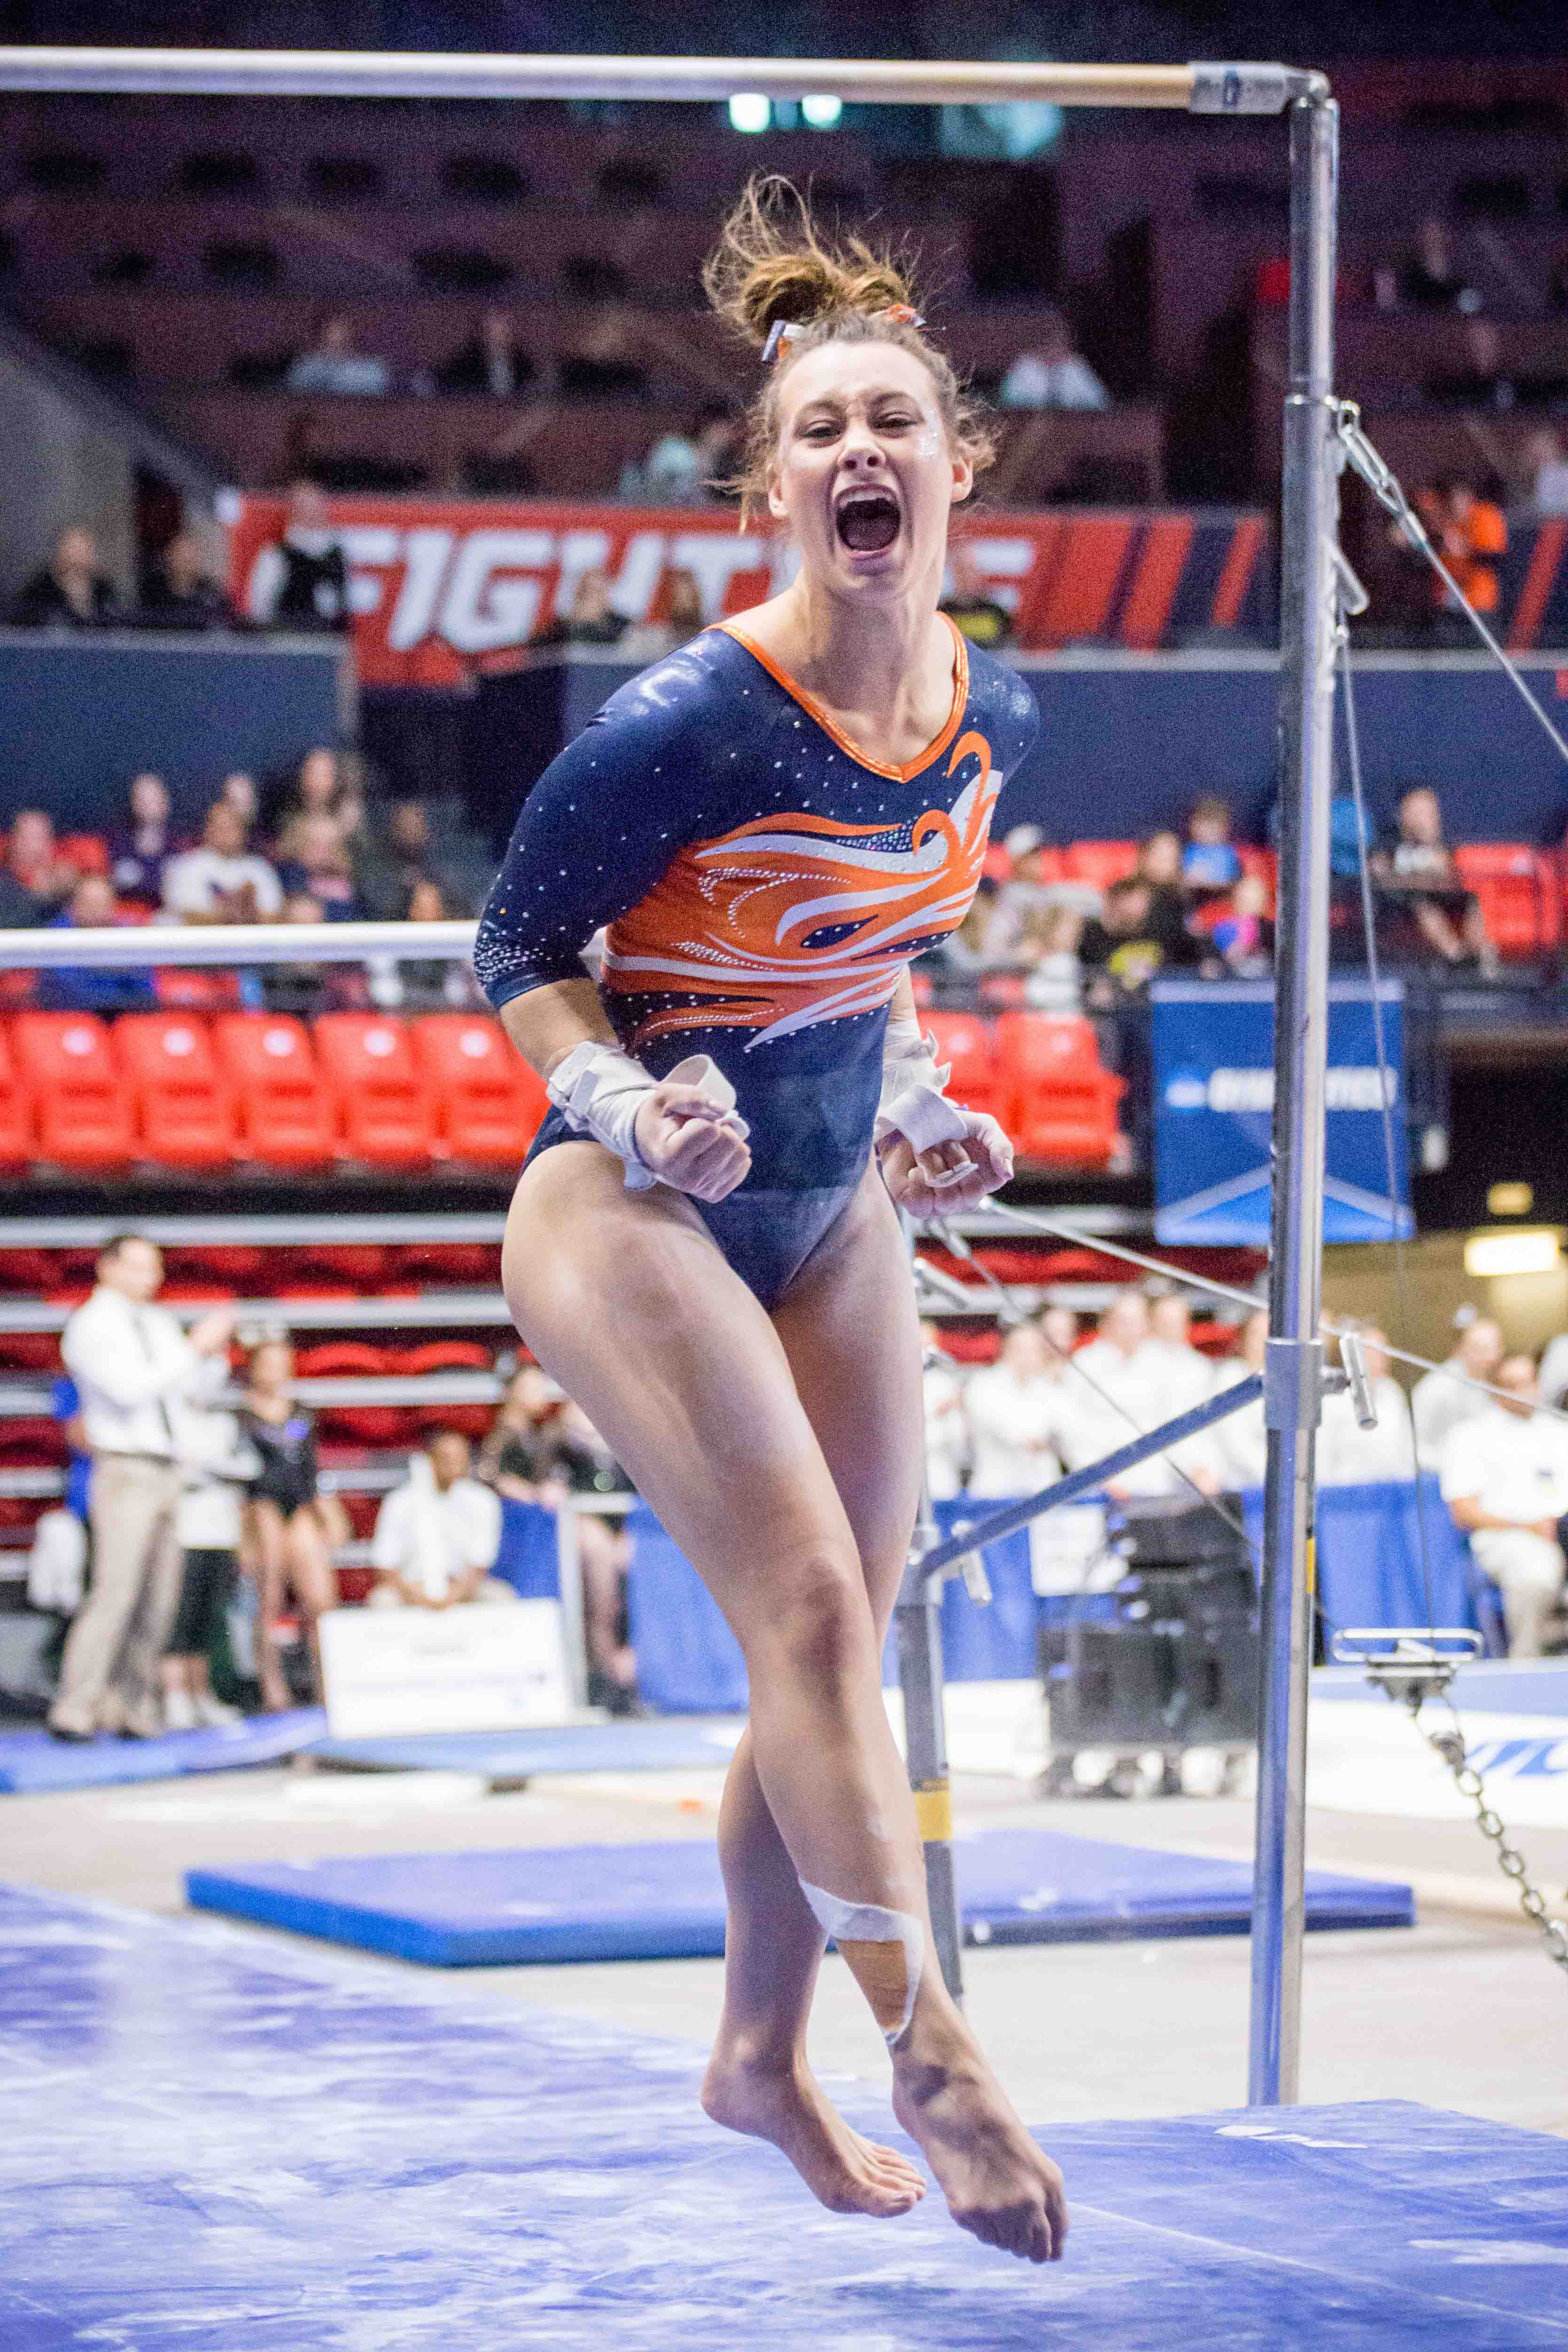 The Daily Illini : Illinois women's gymnastics team finishes its season at regionals - The Daily ...